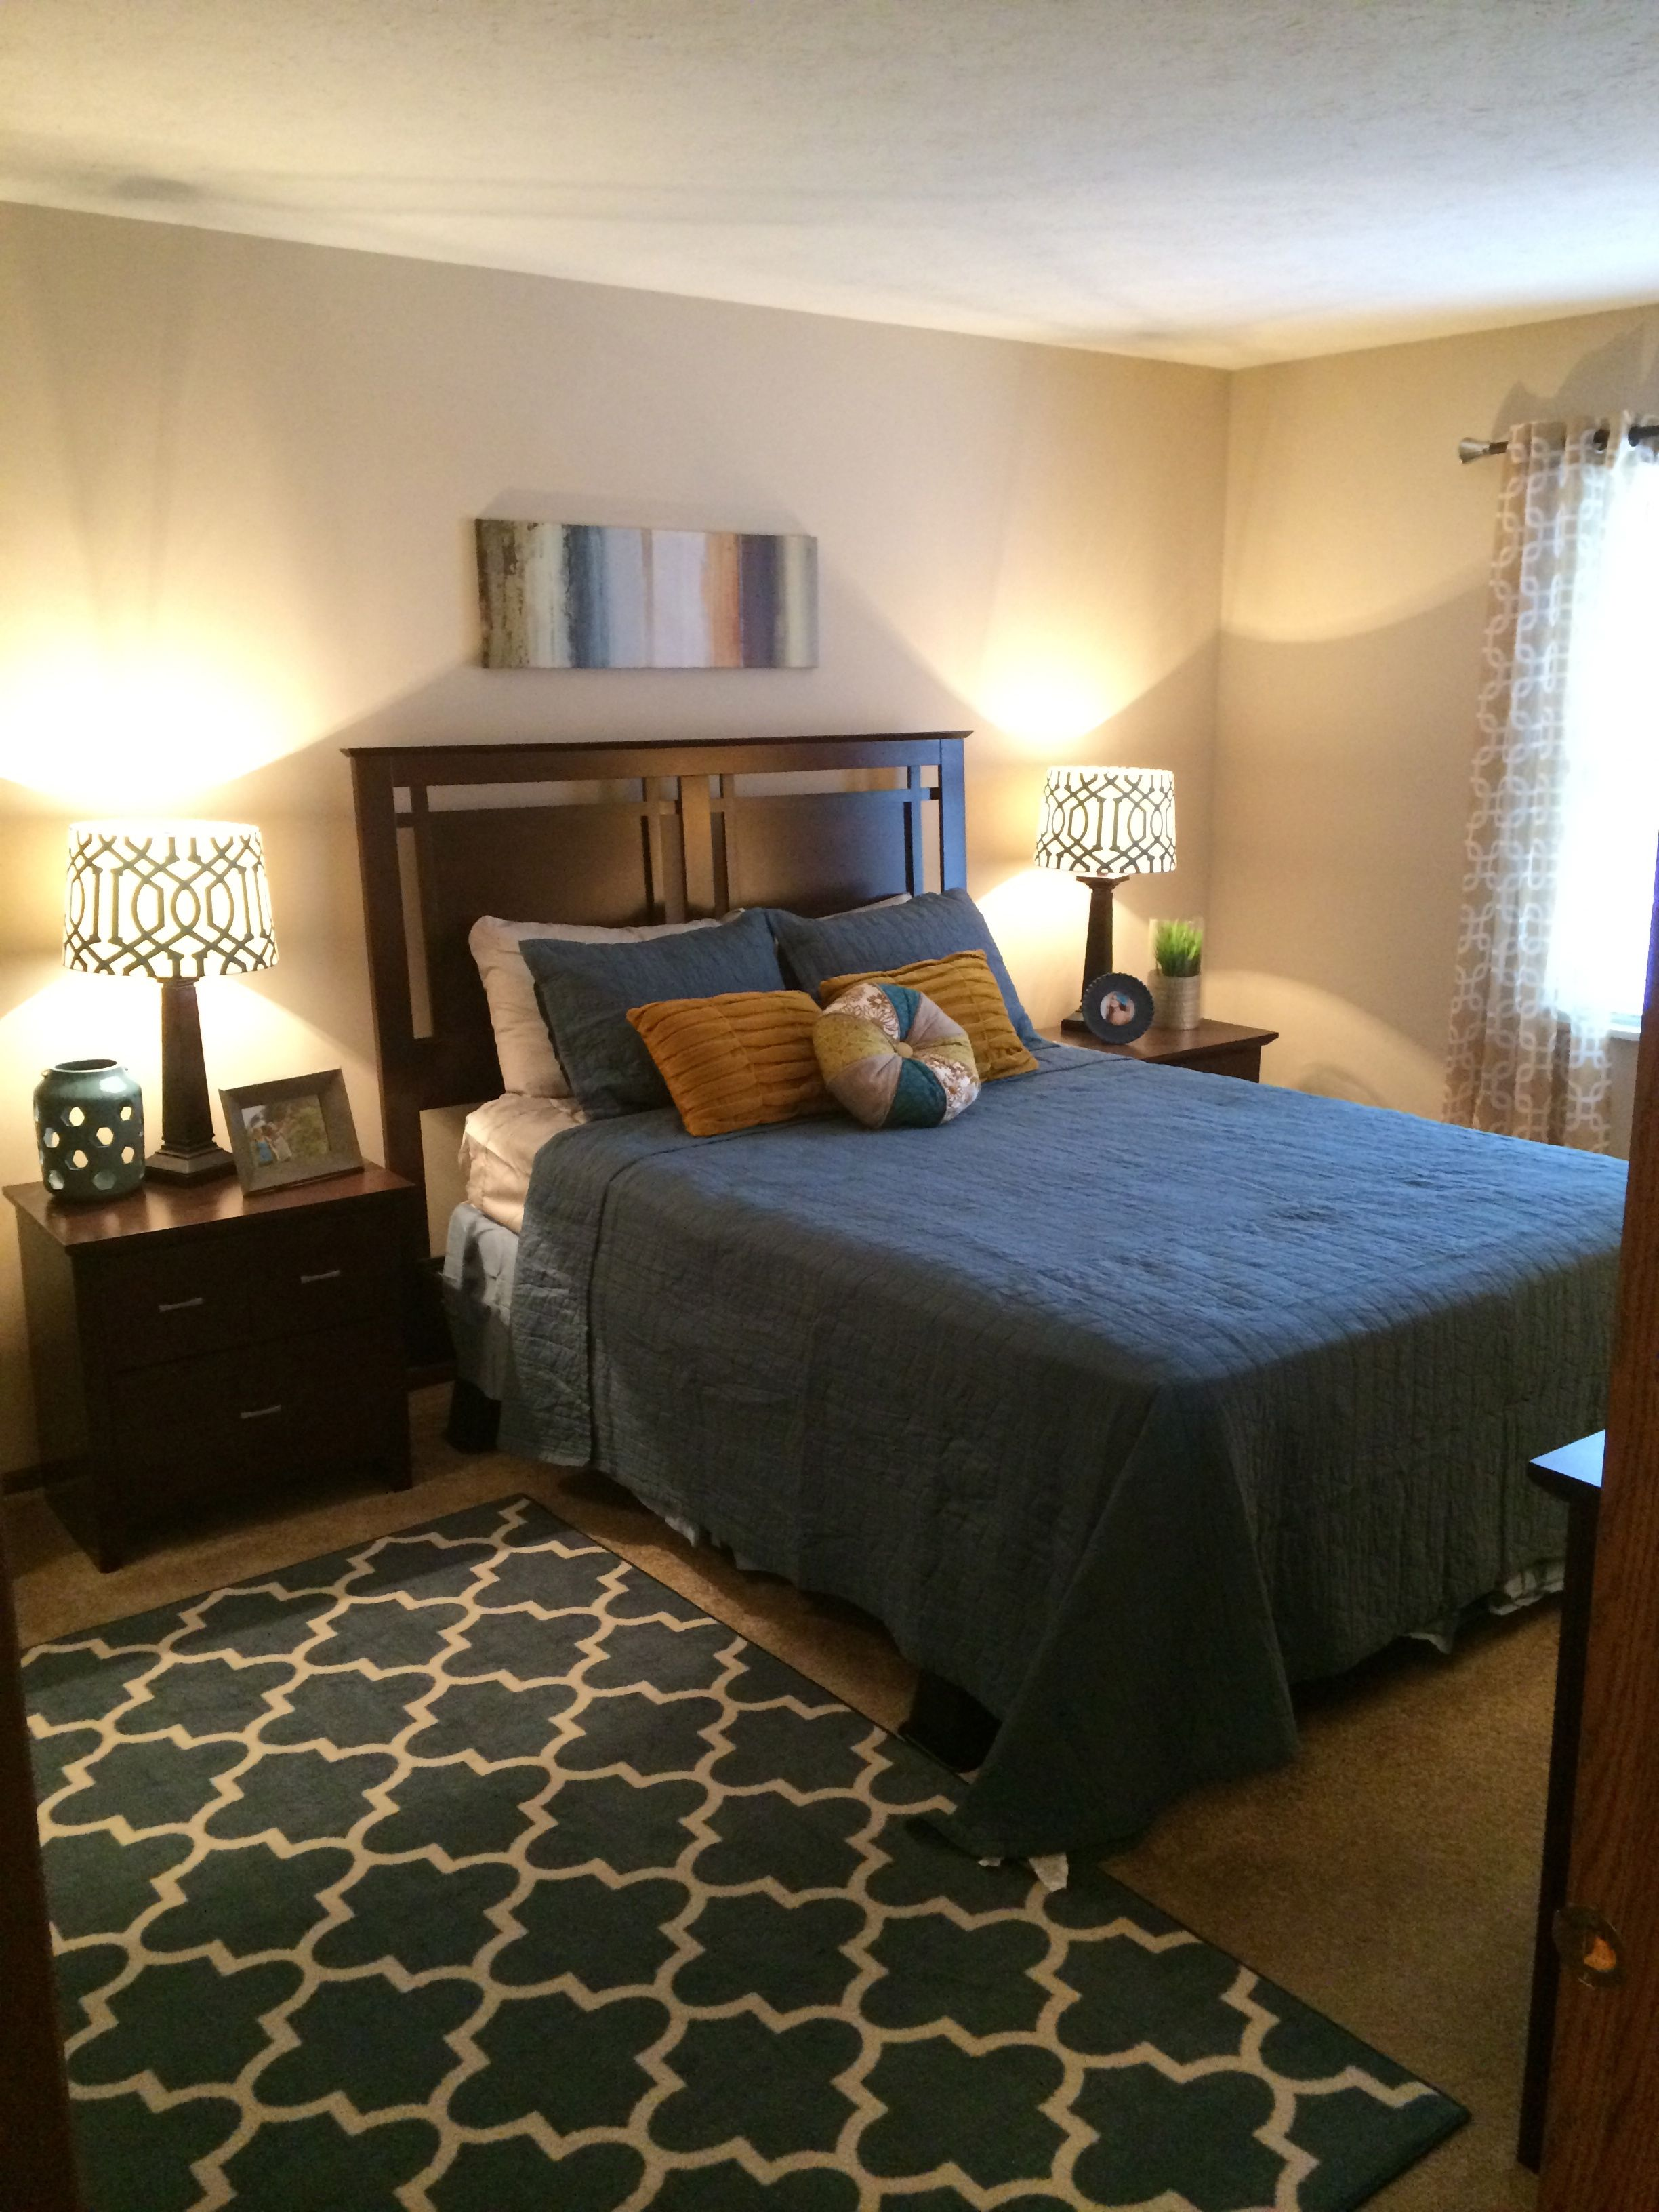 Master Bedrooms Are A Great Size To Fit Queen Size Beds Or Kings